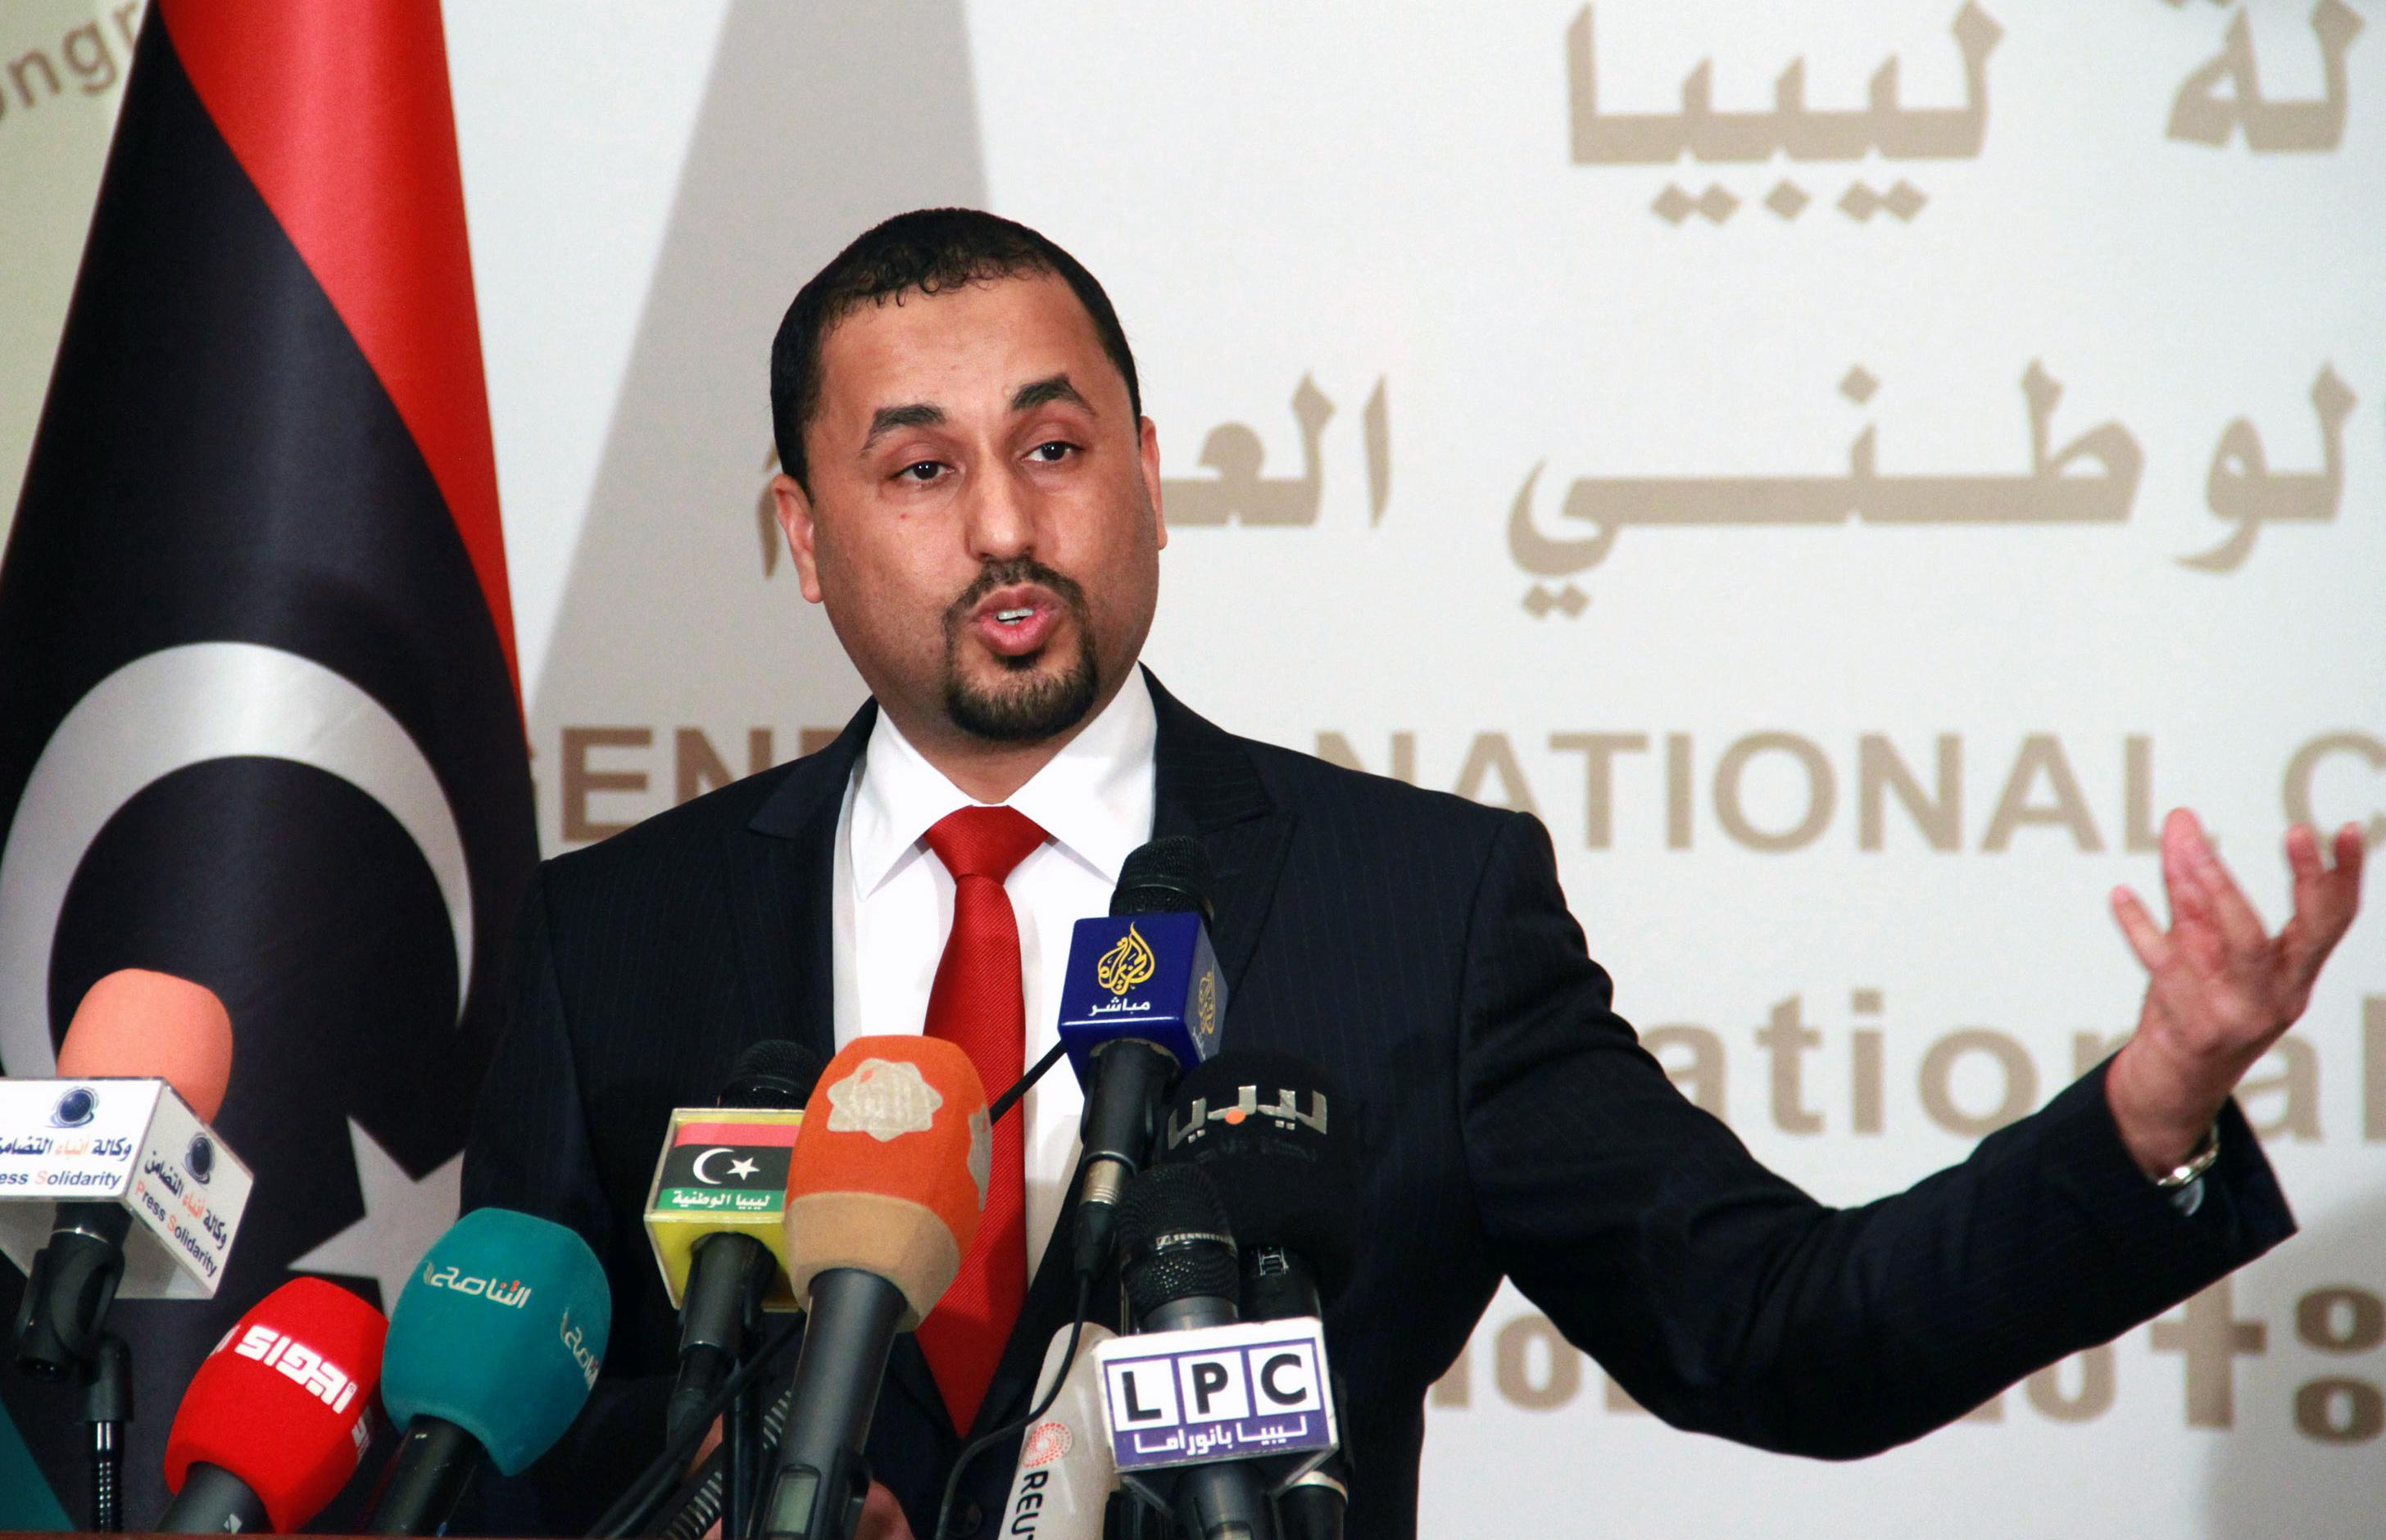 Tripoli rivals to join peace talks 'if held in Libya'